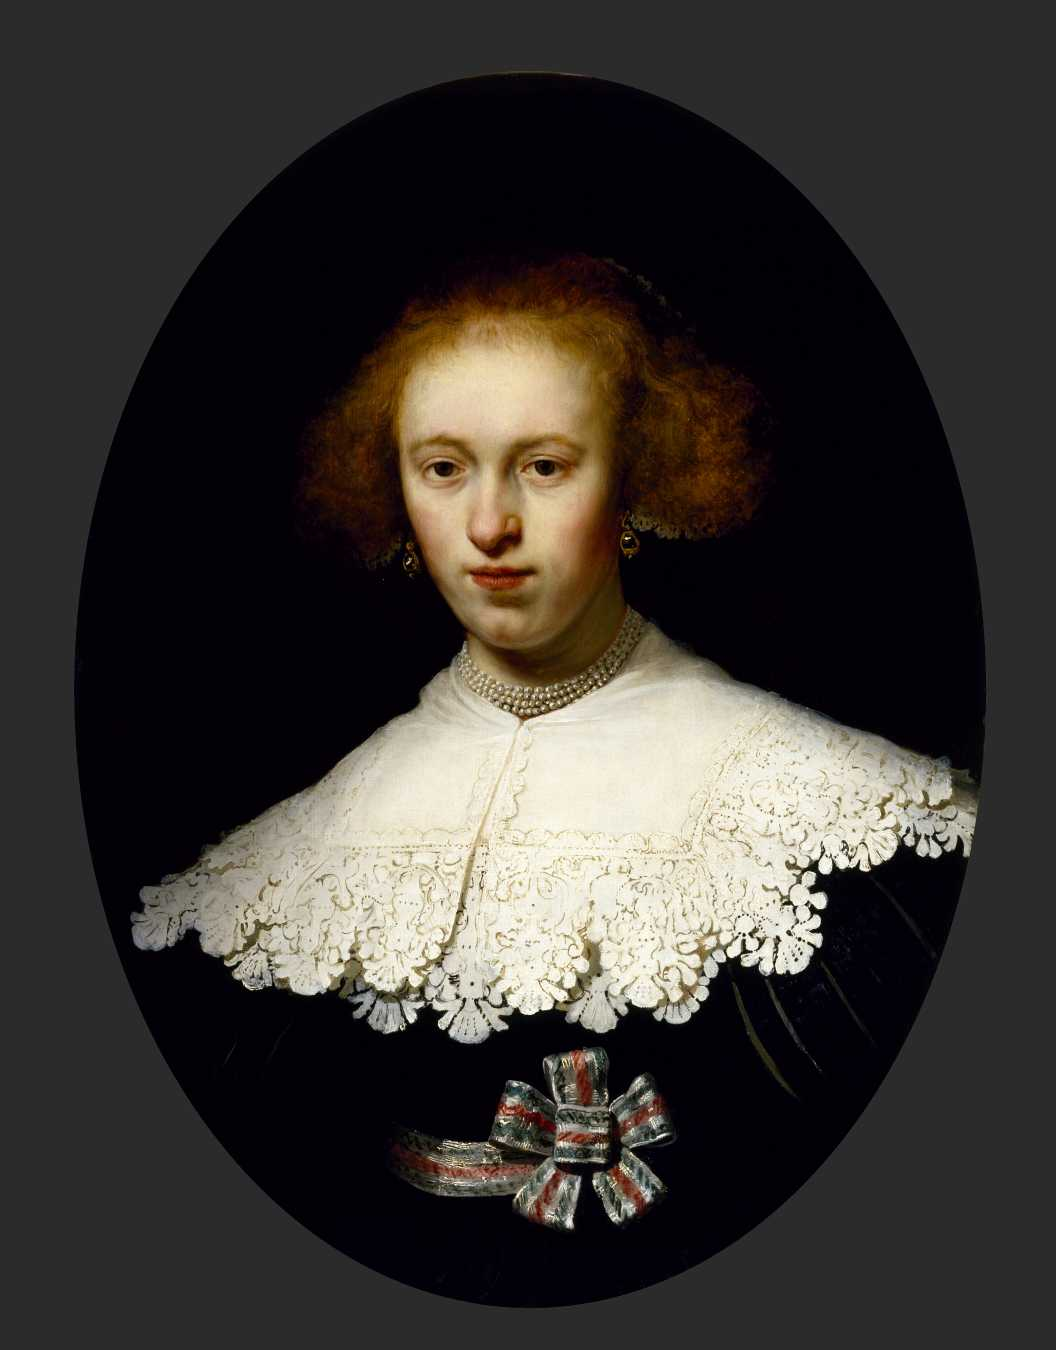 fileportrait of a young woman by rembrandt 1633jpg